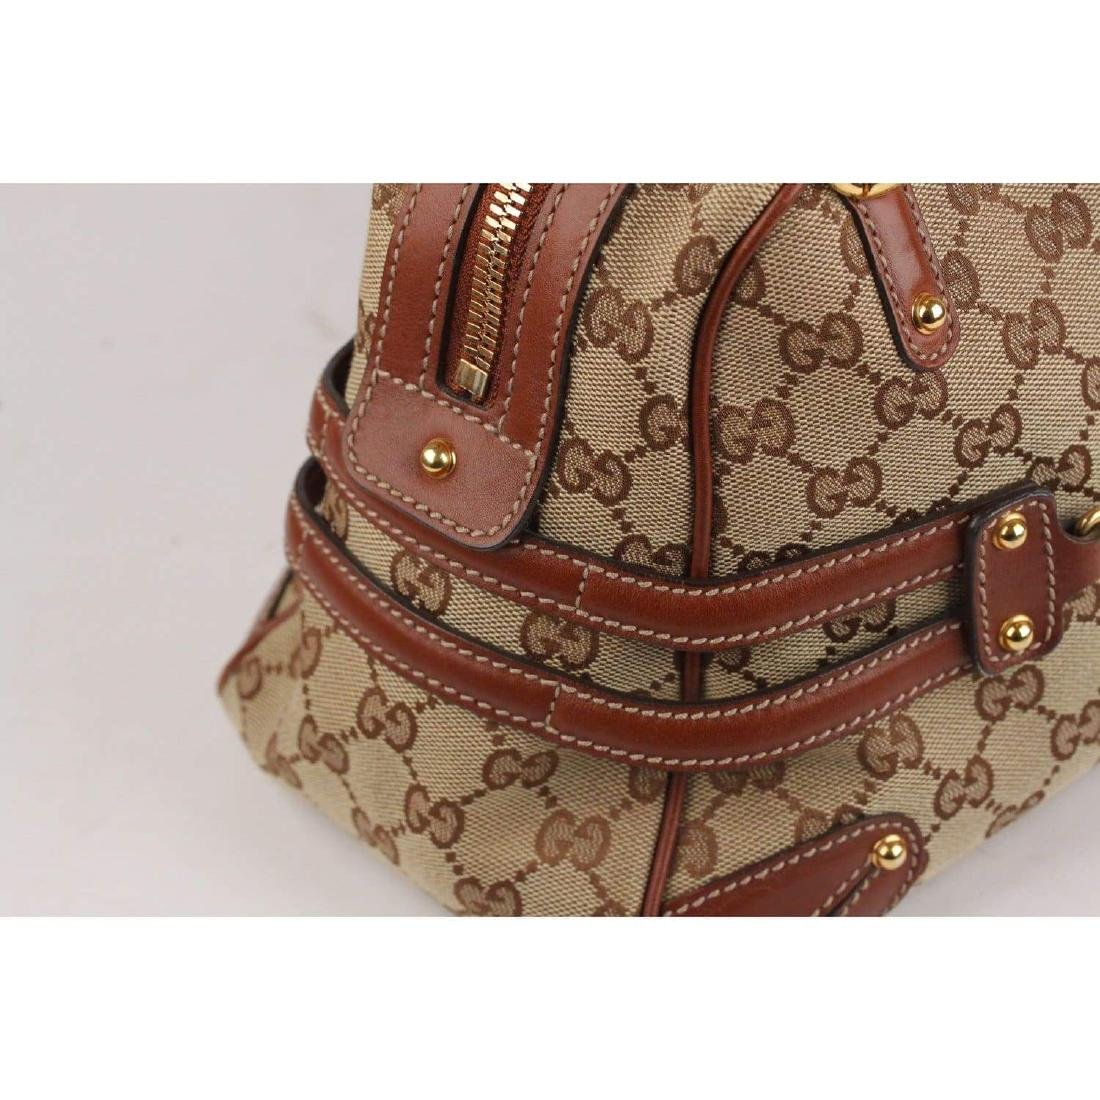 Gucci Wave Boston Bag Satchel - 6